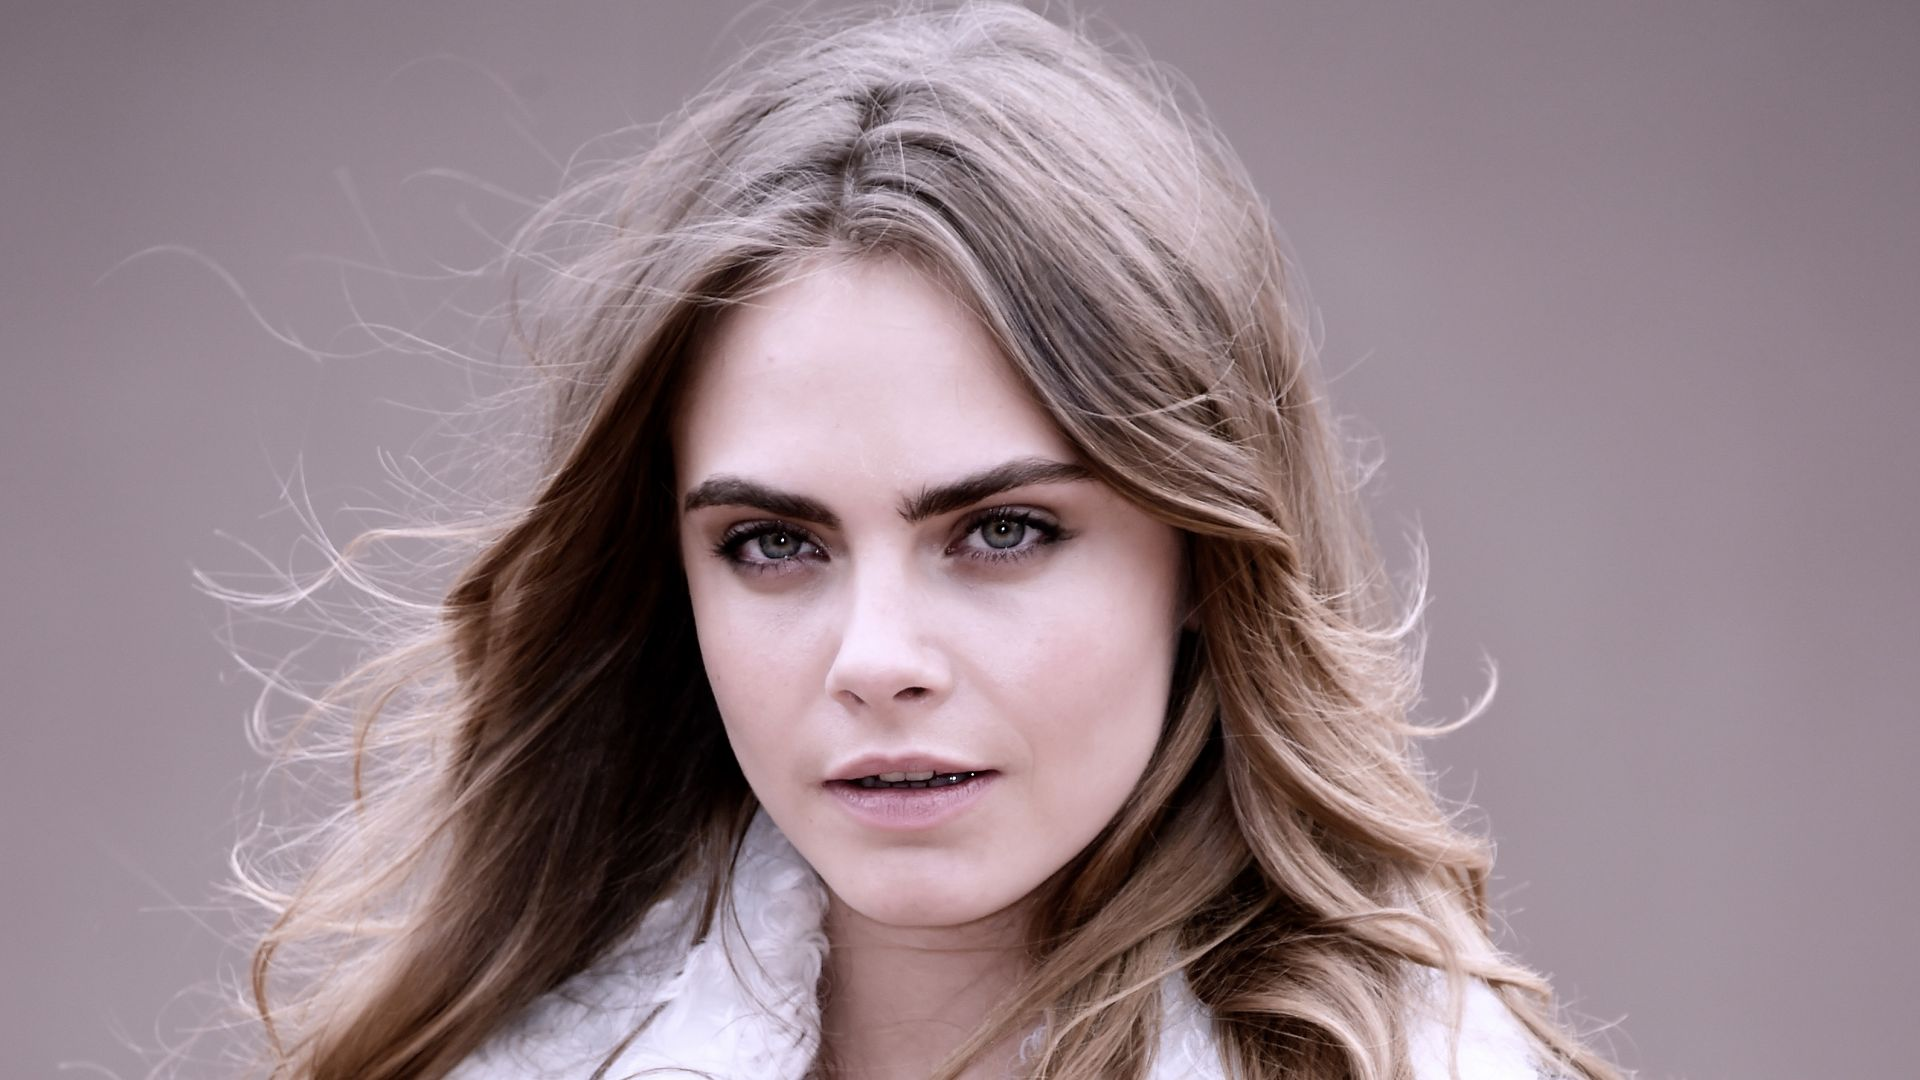 Cara Delevingne, hot, HD (horizontal)